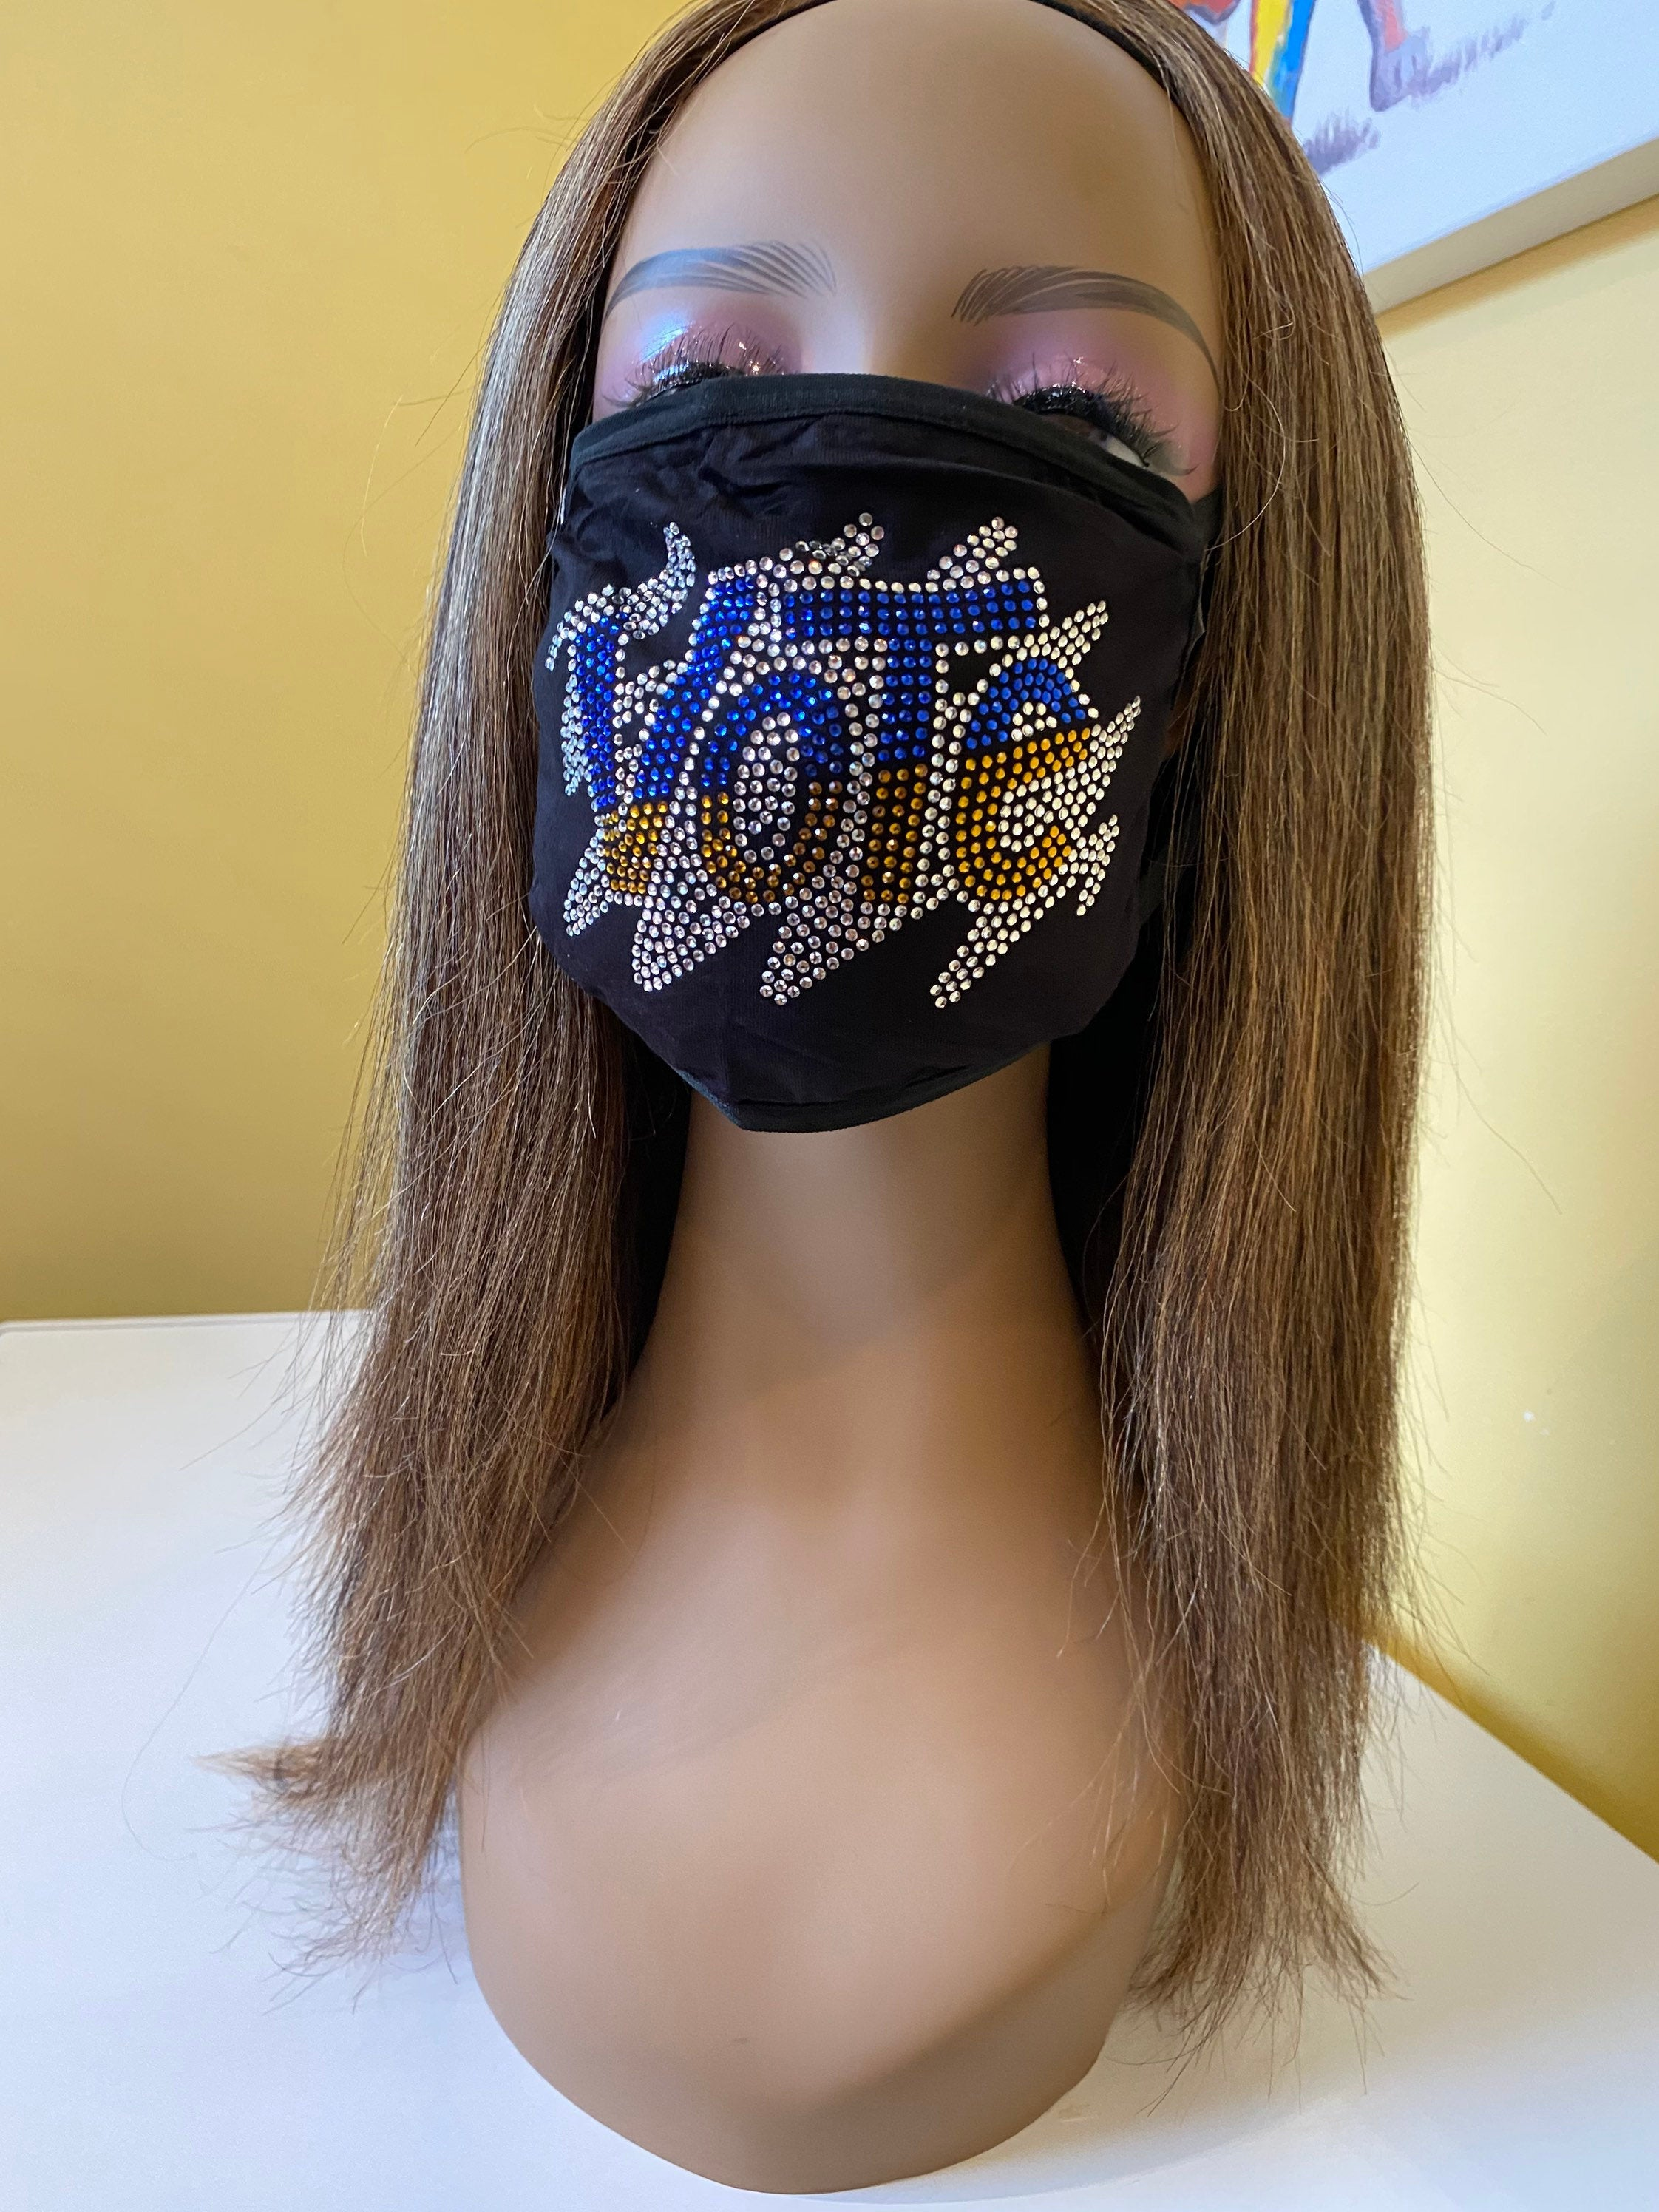 VOTE Rhinestone Bling Face Mask With Filter Pocket  Gold and Blue | Simply For Us